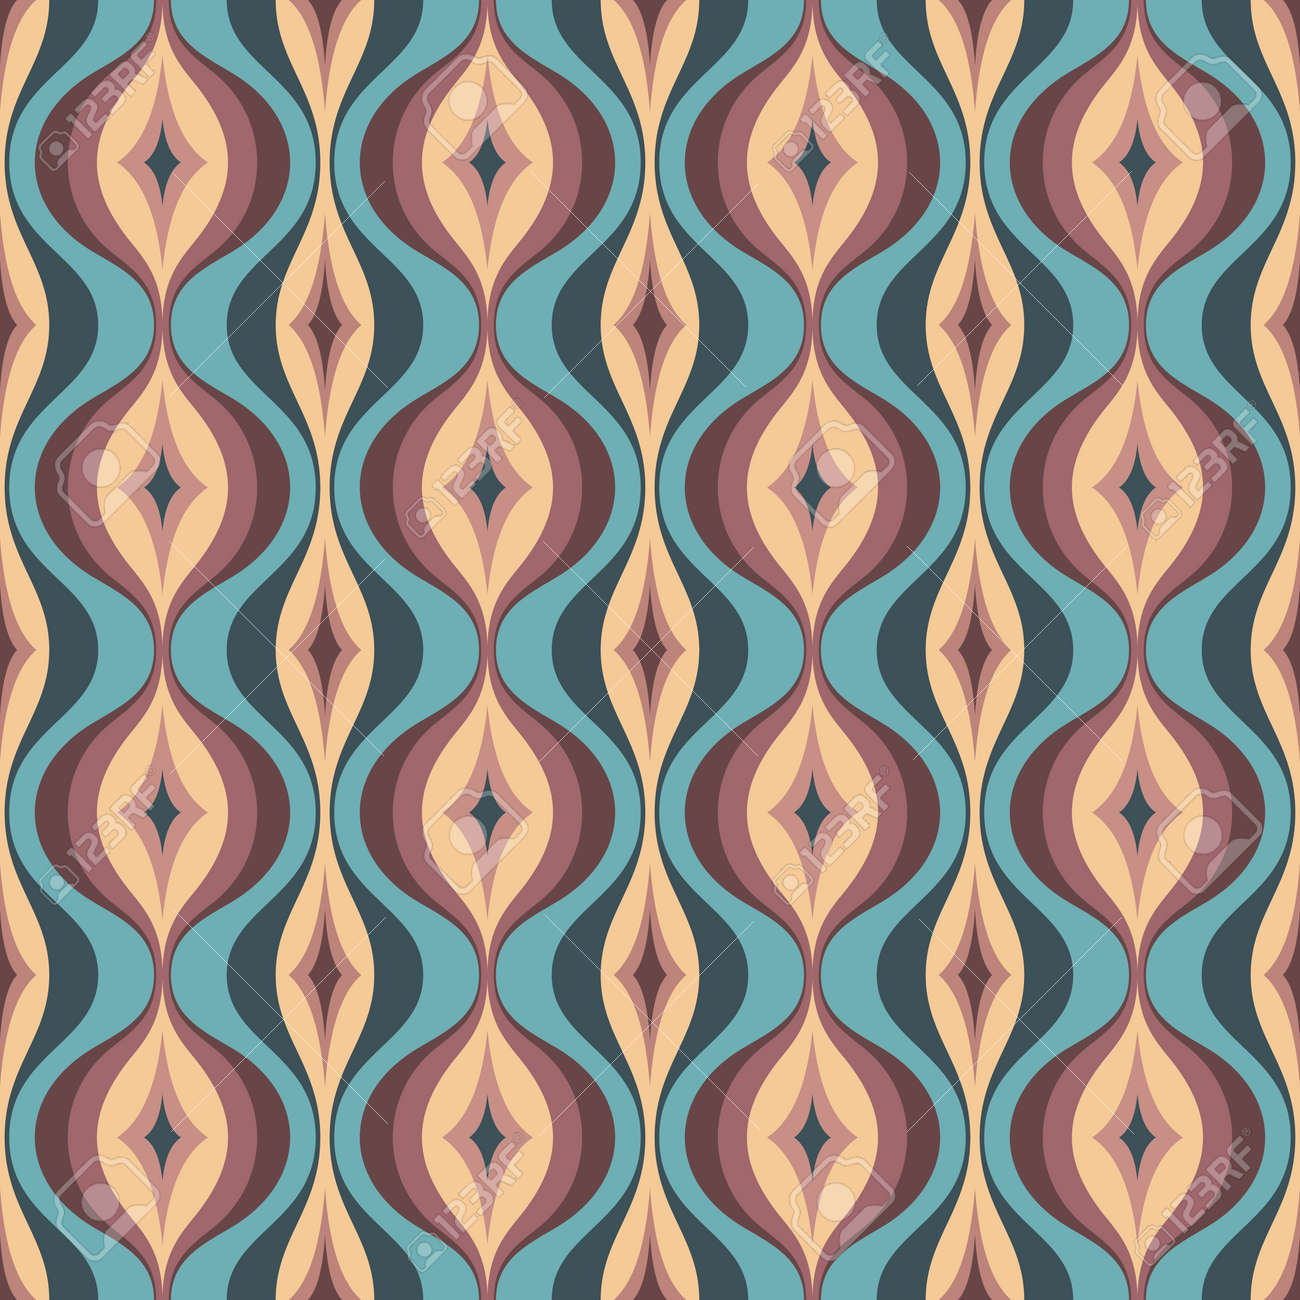 Mid Century Modern Art Vector Background Abstract Geometric Royalty Free Cliparts Vectors And Stock Illustration Image 128889071